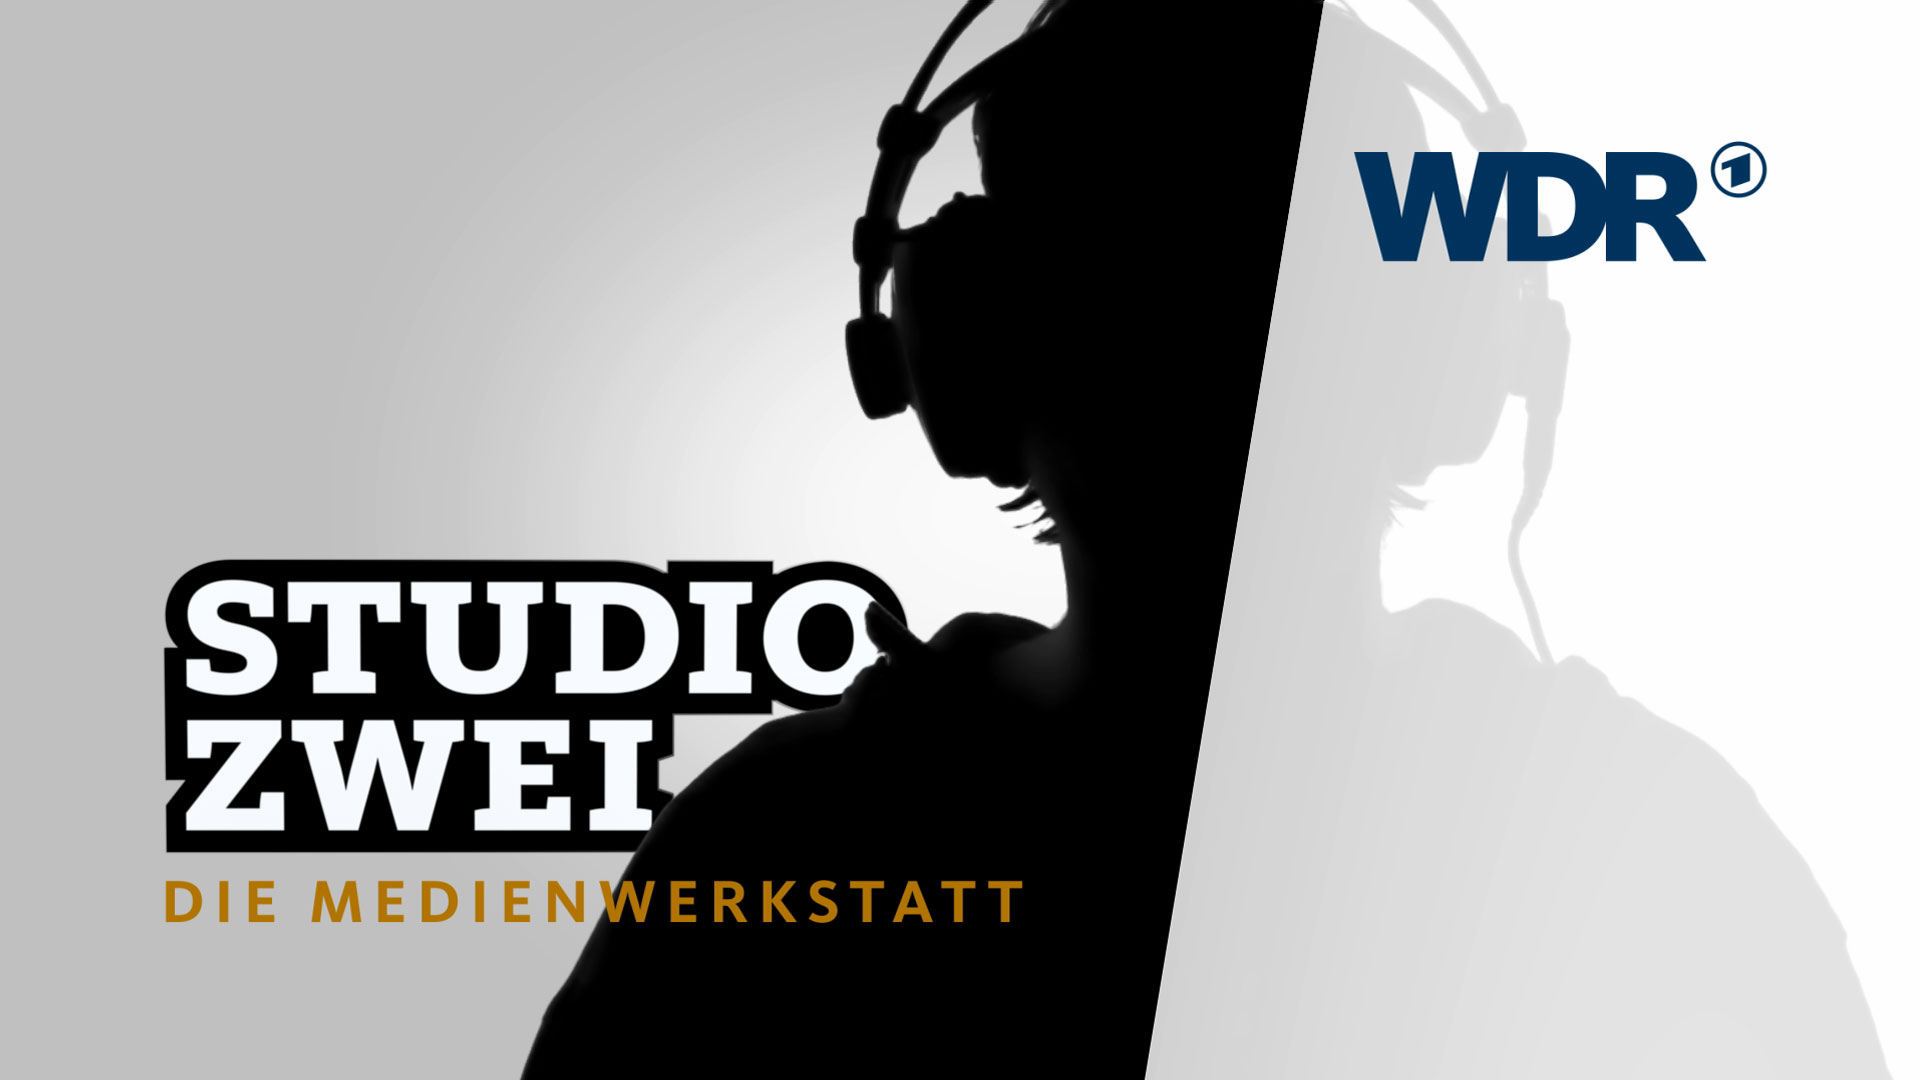 Binar I Motion Design I WDR Studio Zwei